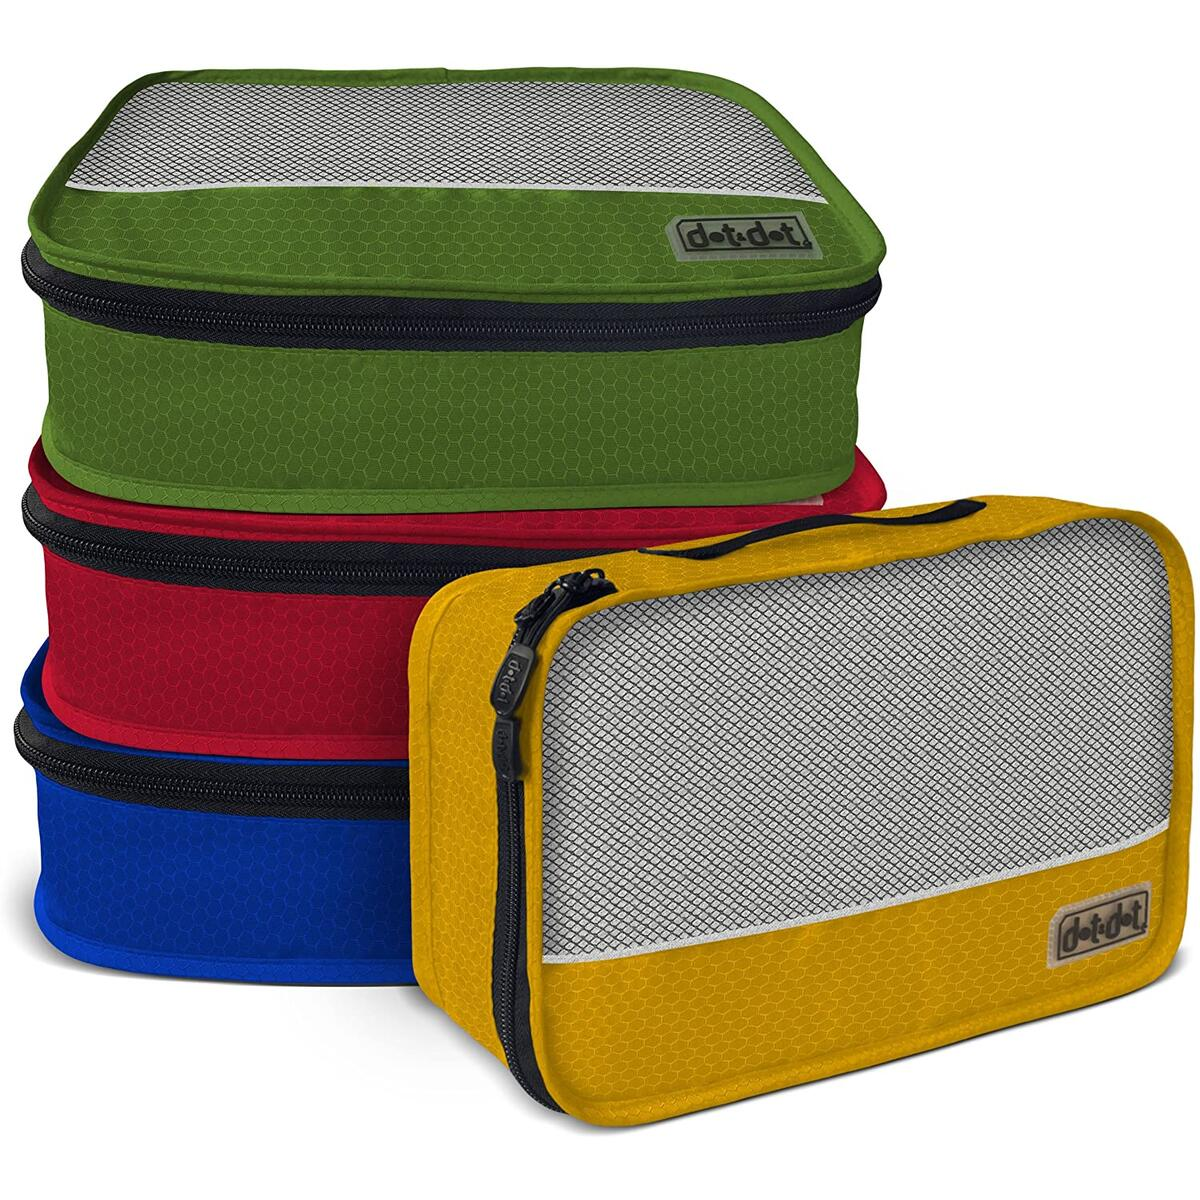 Dot&Dot Small Packing Cubes for Travel - Luggage Accessories Organizers